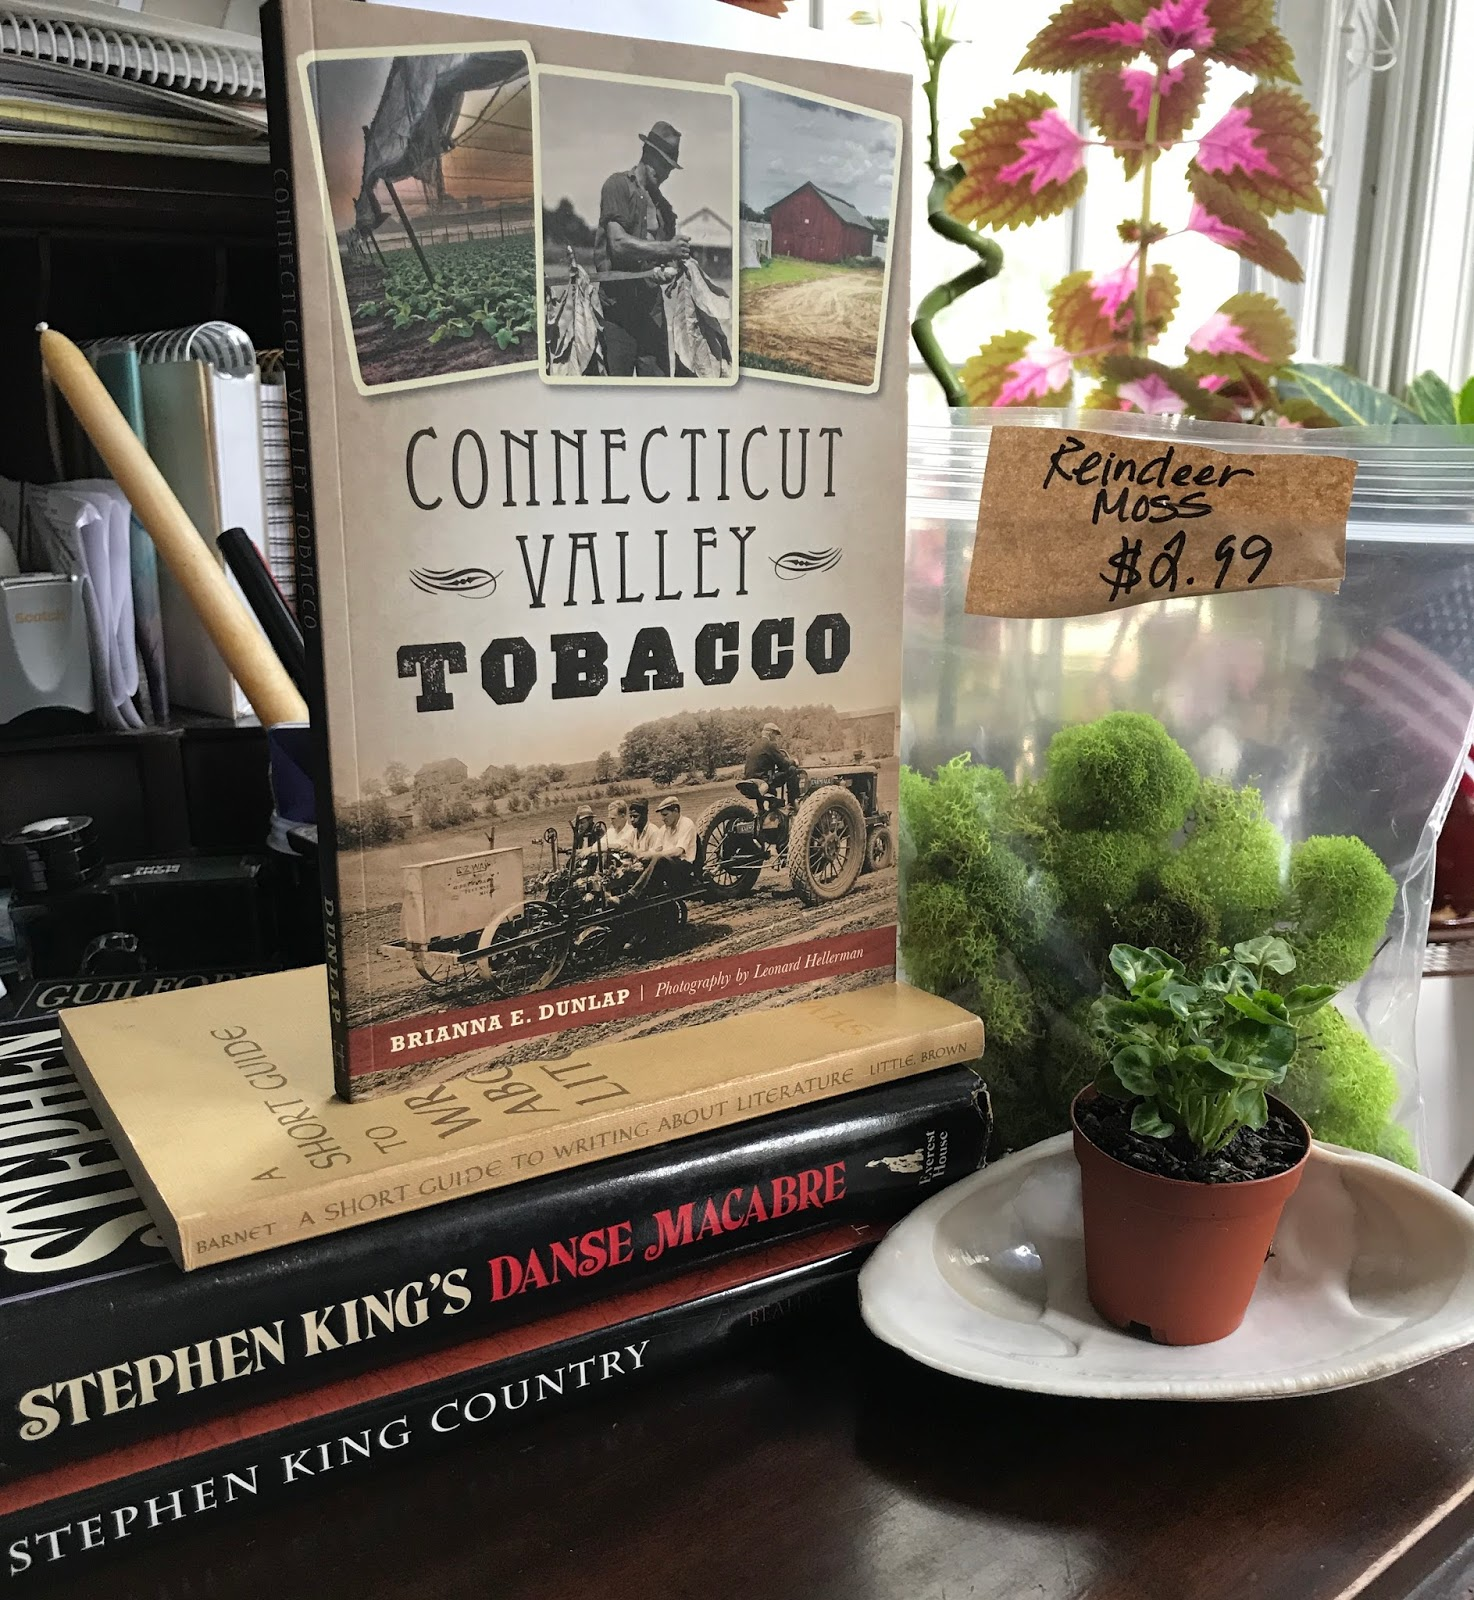 Book And Plant Haul From The Book Club Bookstore, South Windsor, Ct  (wildmoobooks